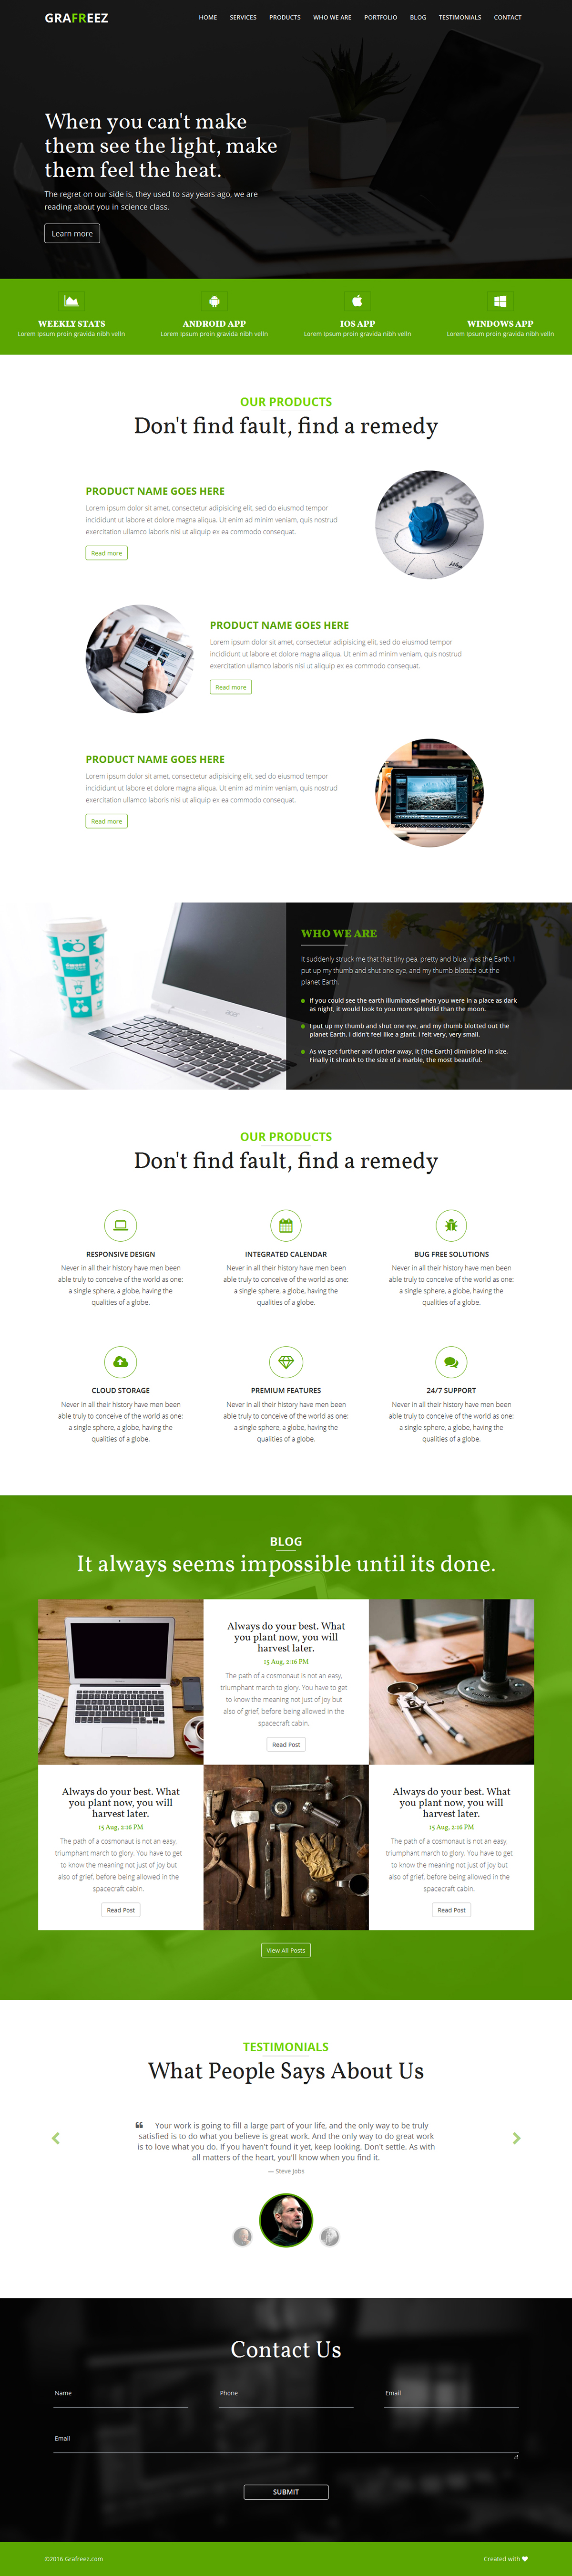 Buzz Bootstrap Business Landing Page Template on Behance